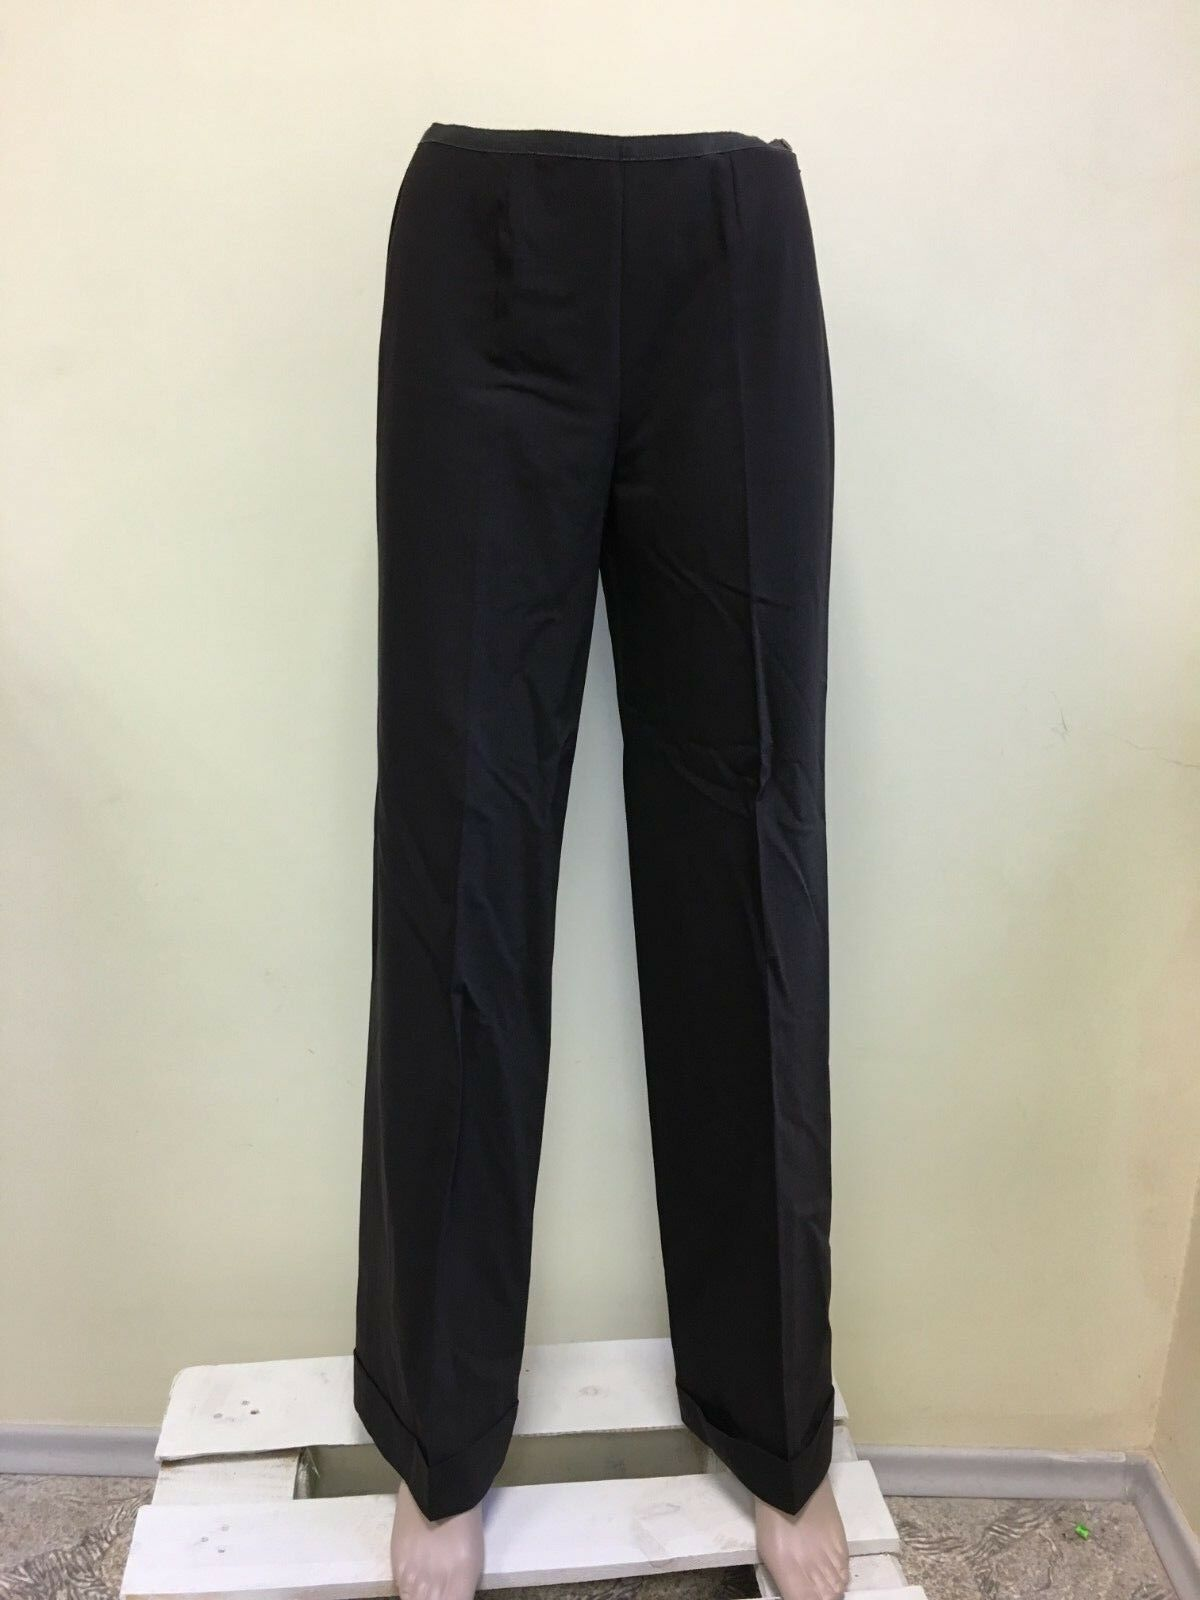 Paule Ka women's trousers F38 IT42 Wool blend